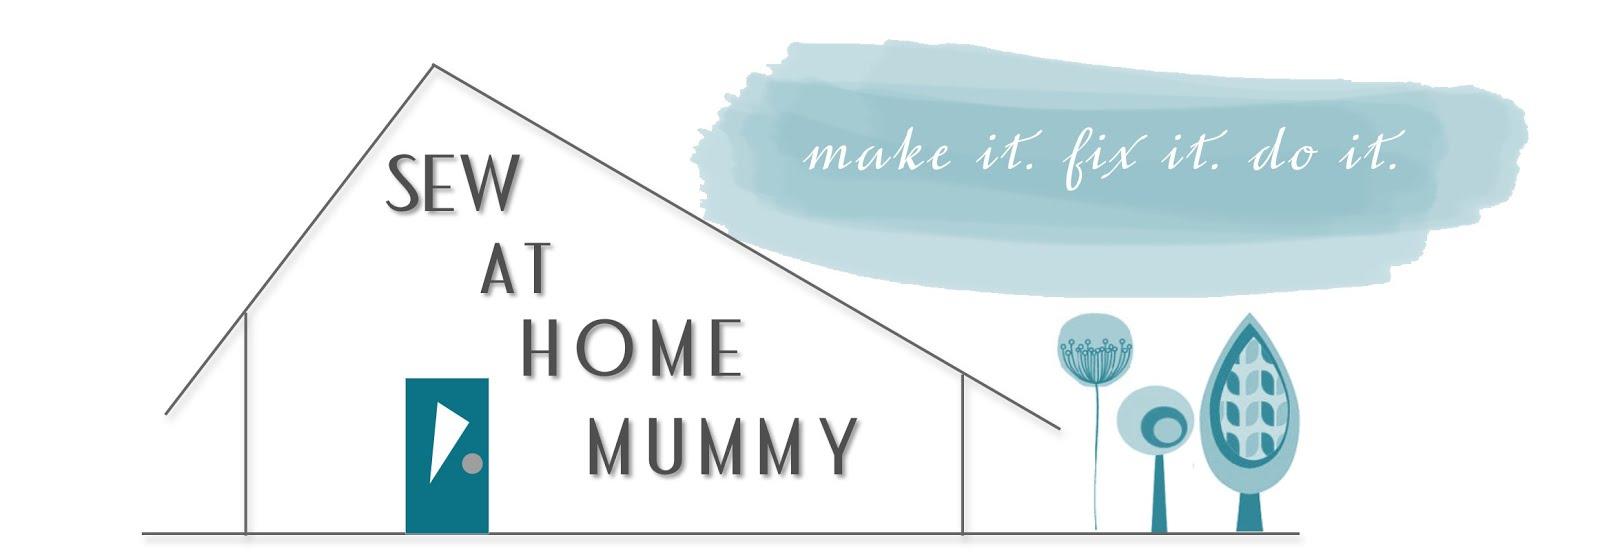 ✄ Sew at Home Mummy ✄